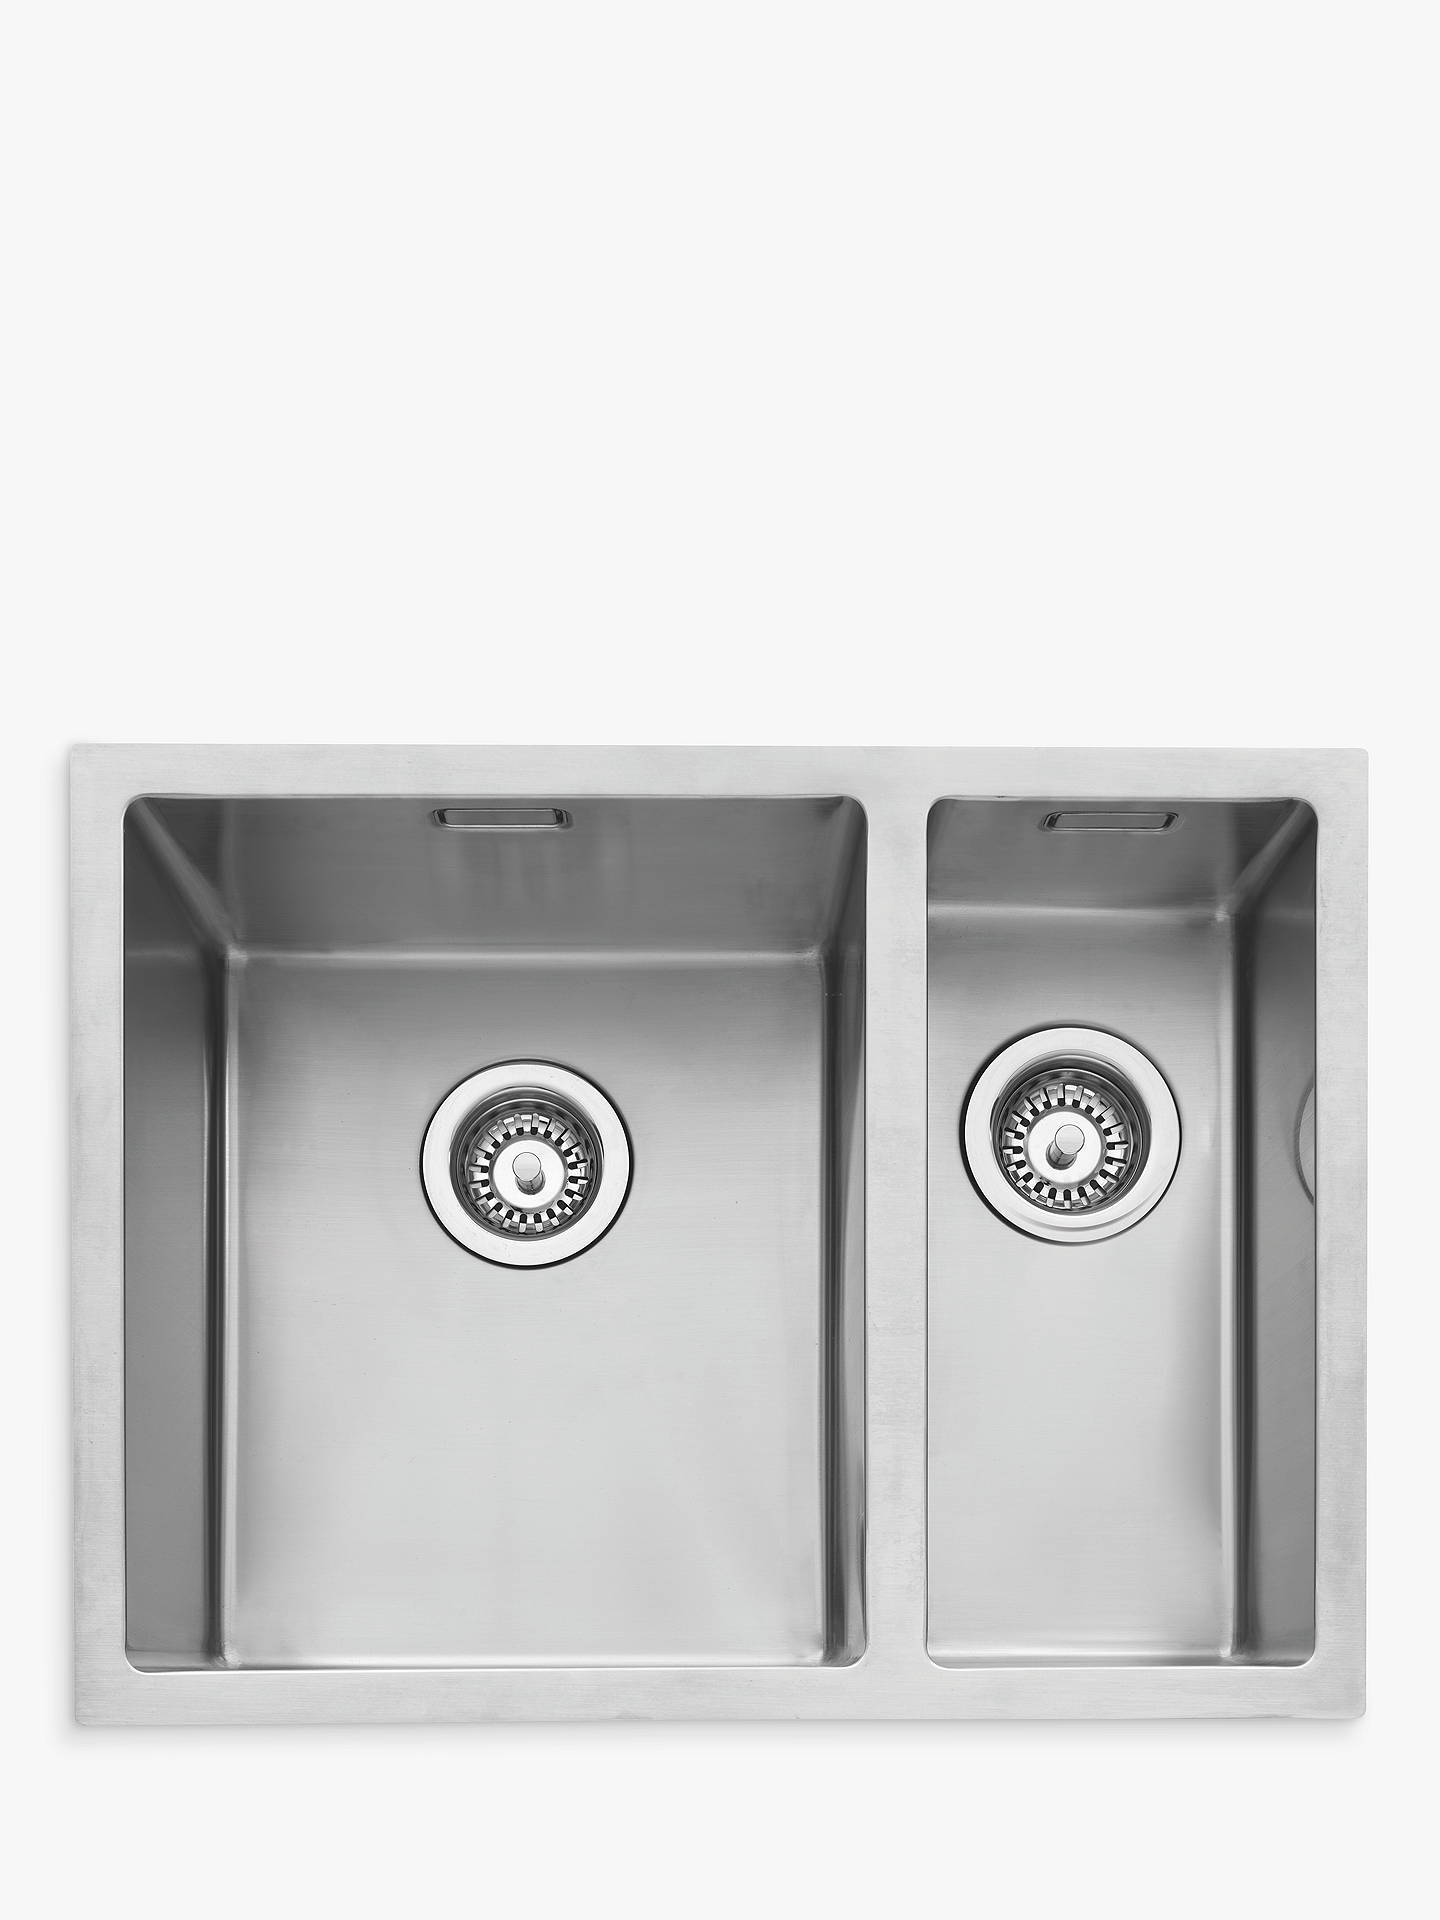 BuyJohn Lewis & Partners Undermount 1.5 Right Hand Bowl Kitchen Sink, Stainless Steel Online at johnlewis.com